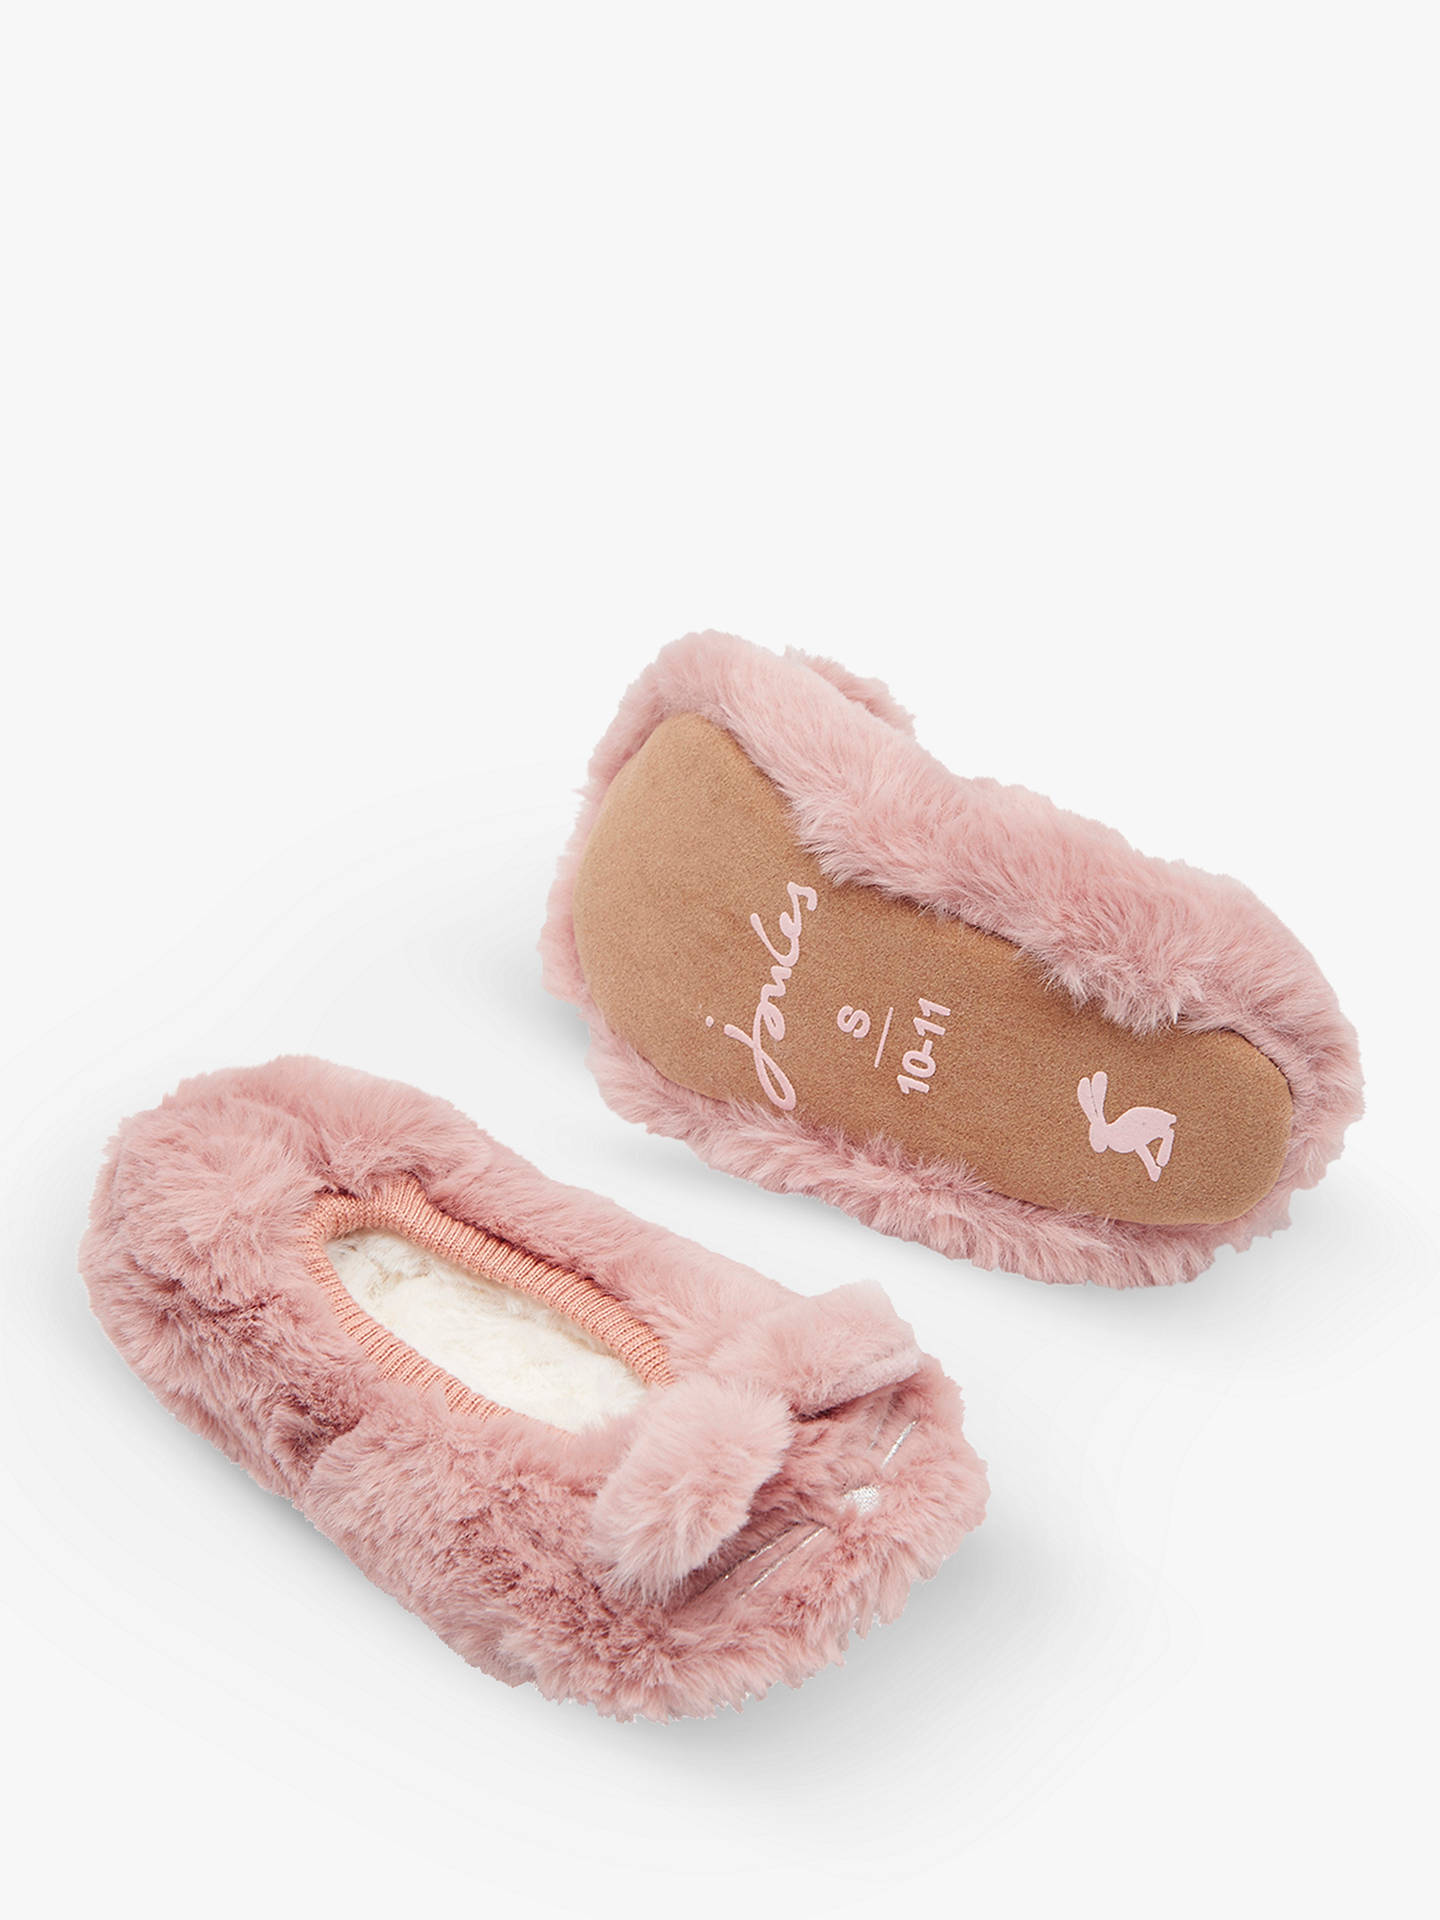 f46372c7ca2 ... Buy Joules Children s Bunny Slippers